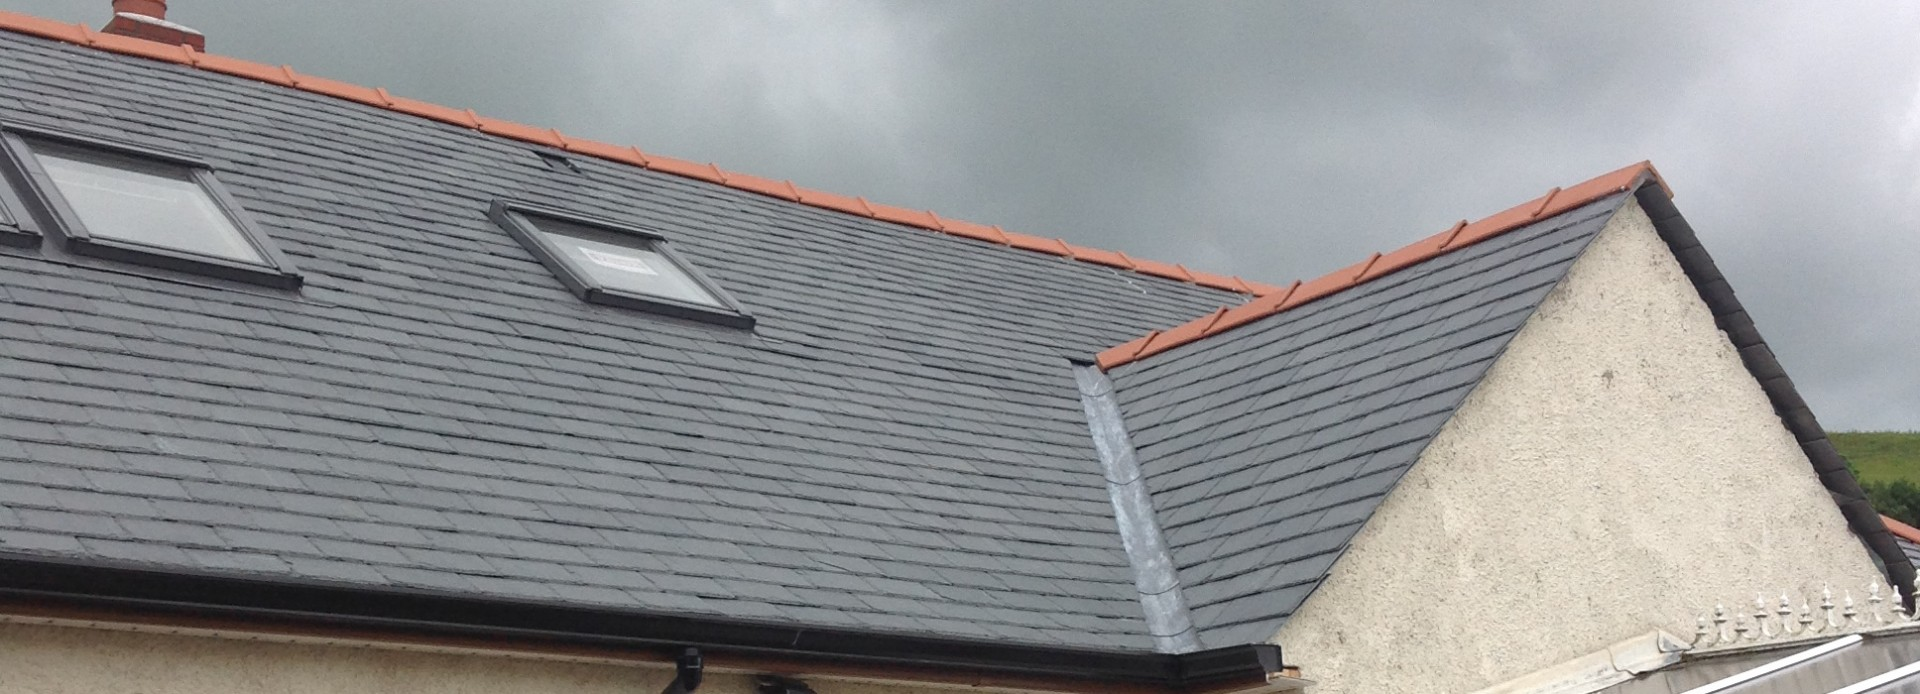 Calidad slates on the roof with clay ridge tiles